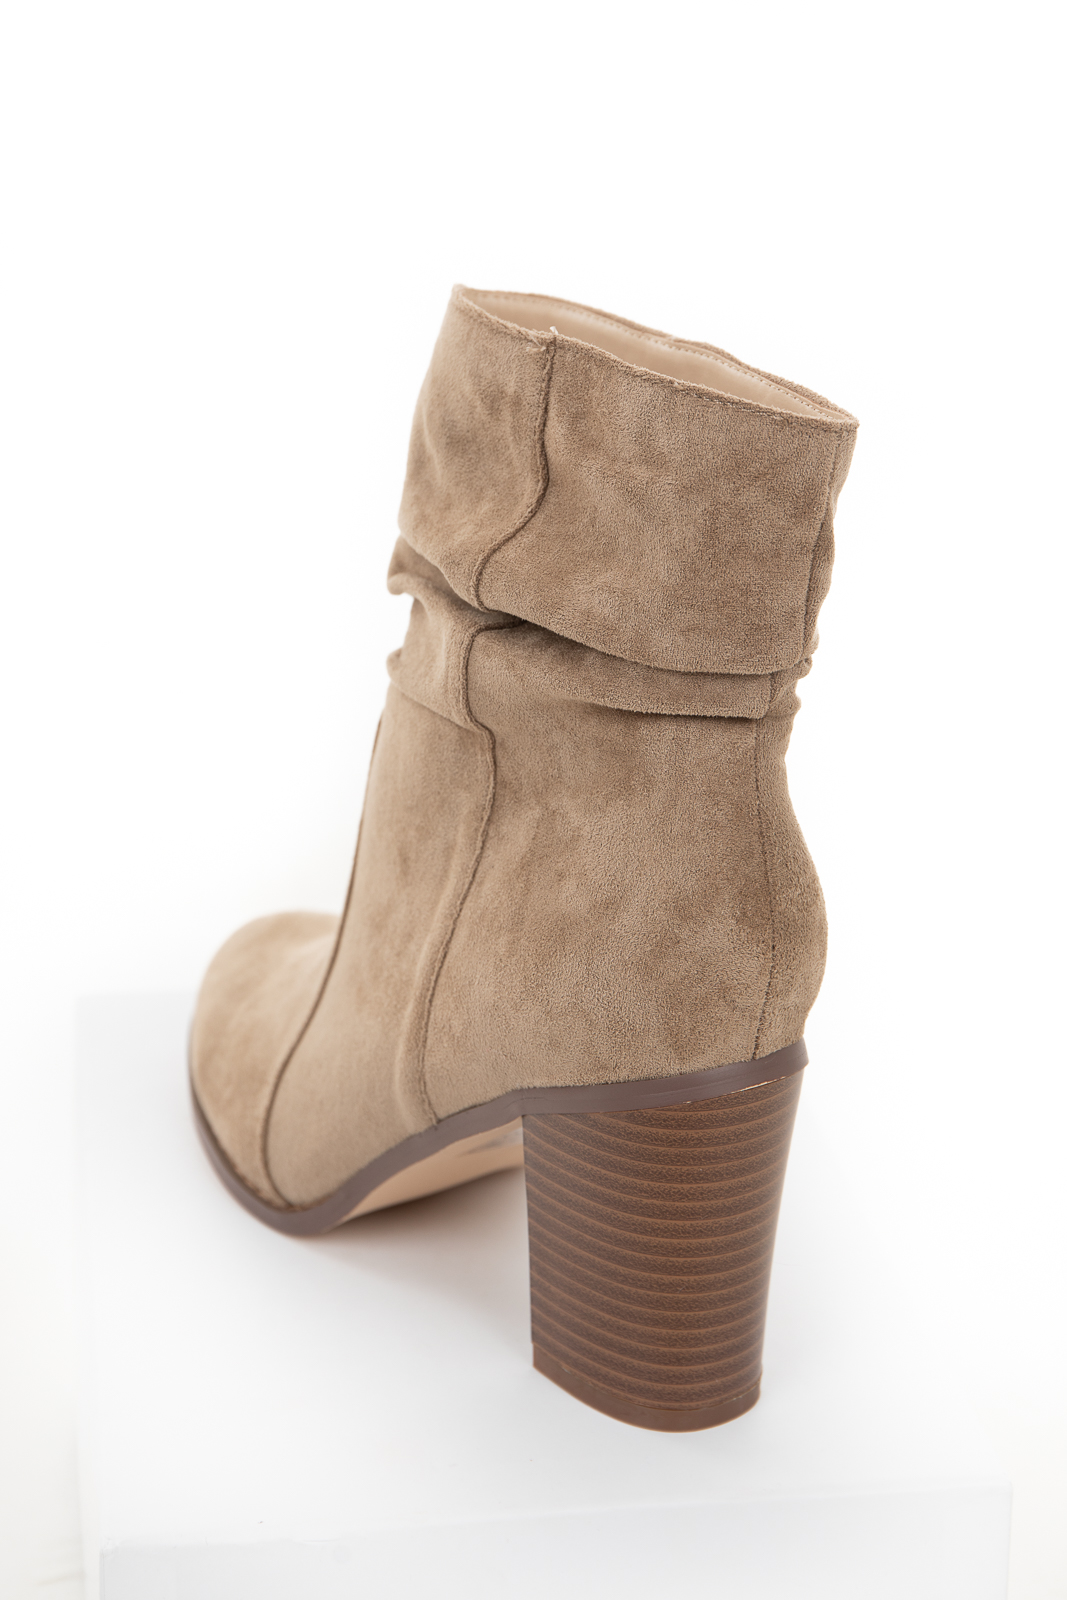 Khaki Faux Suede High Heel Bootie with Gathered Detail